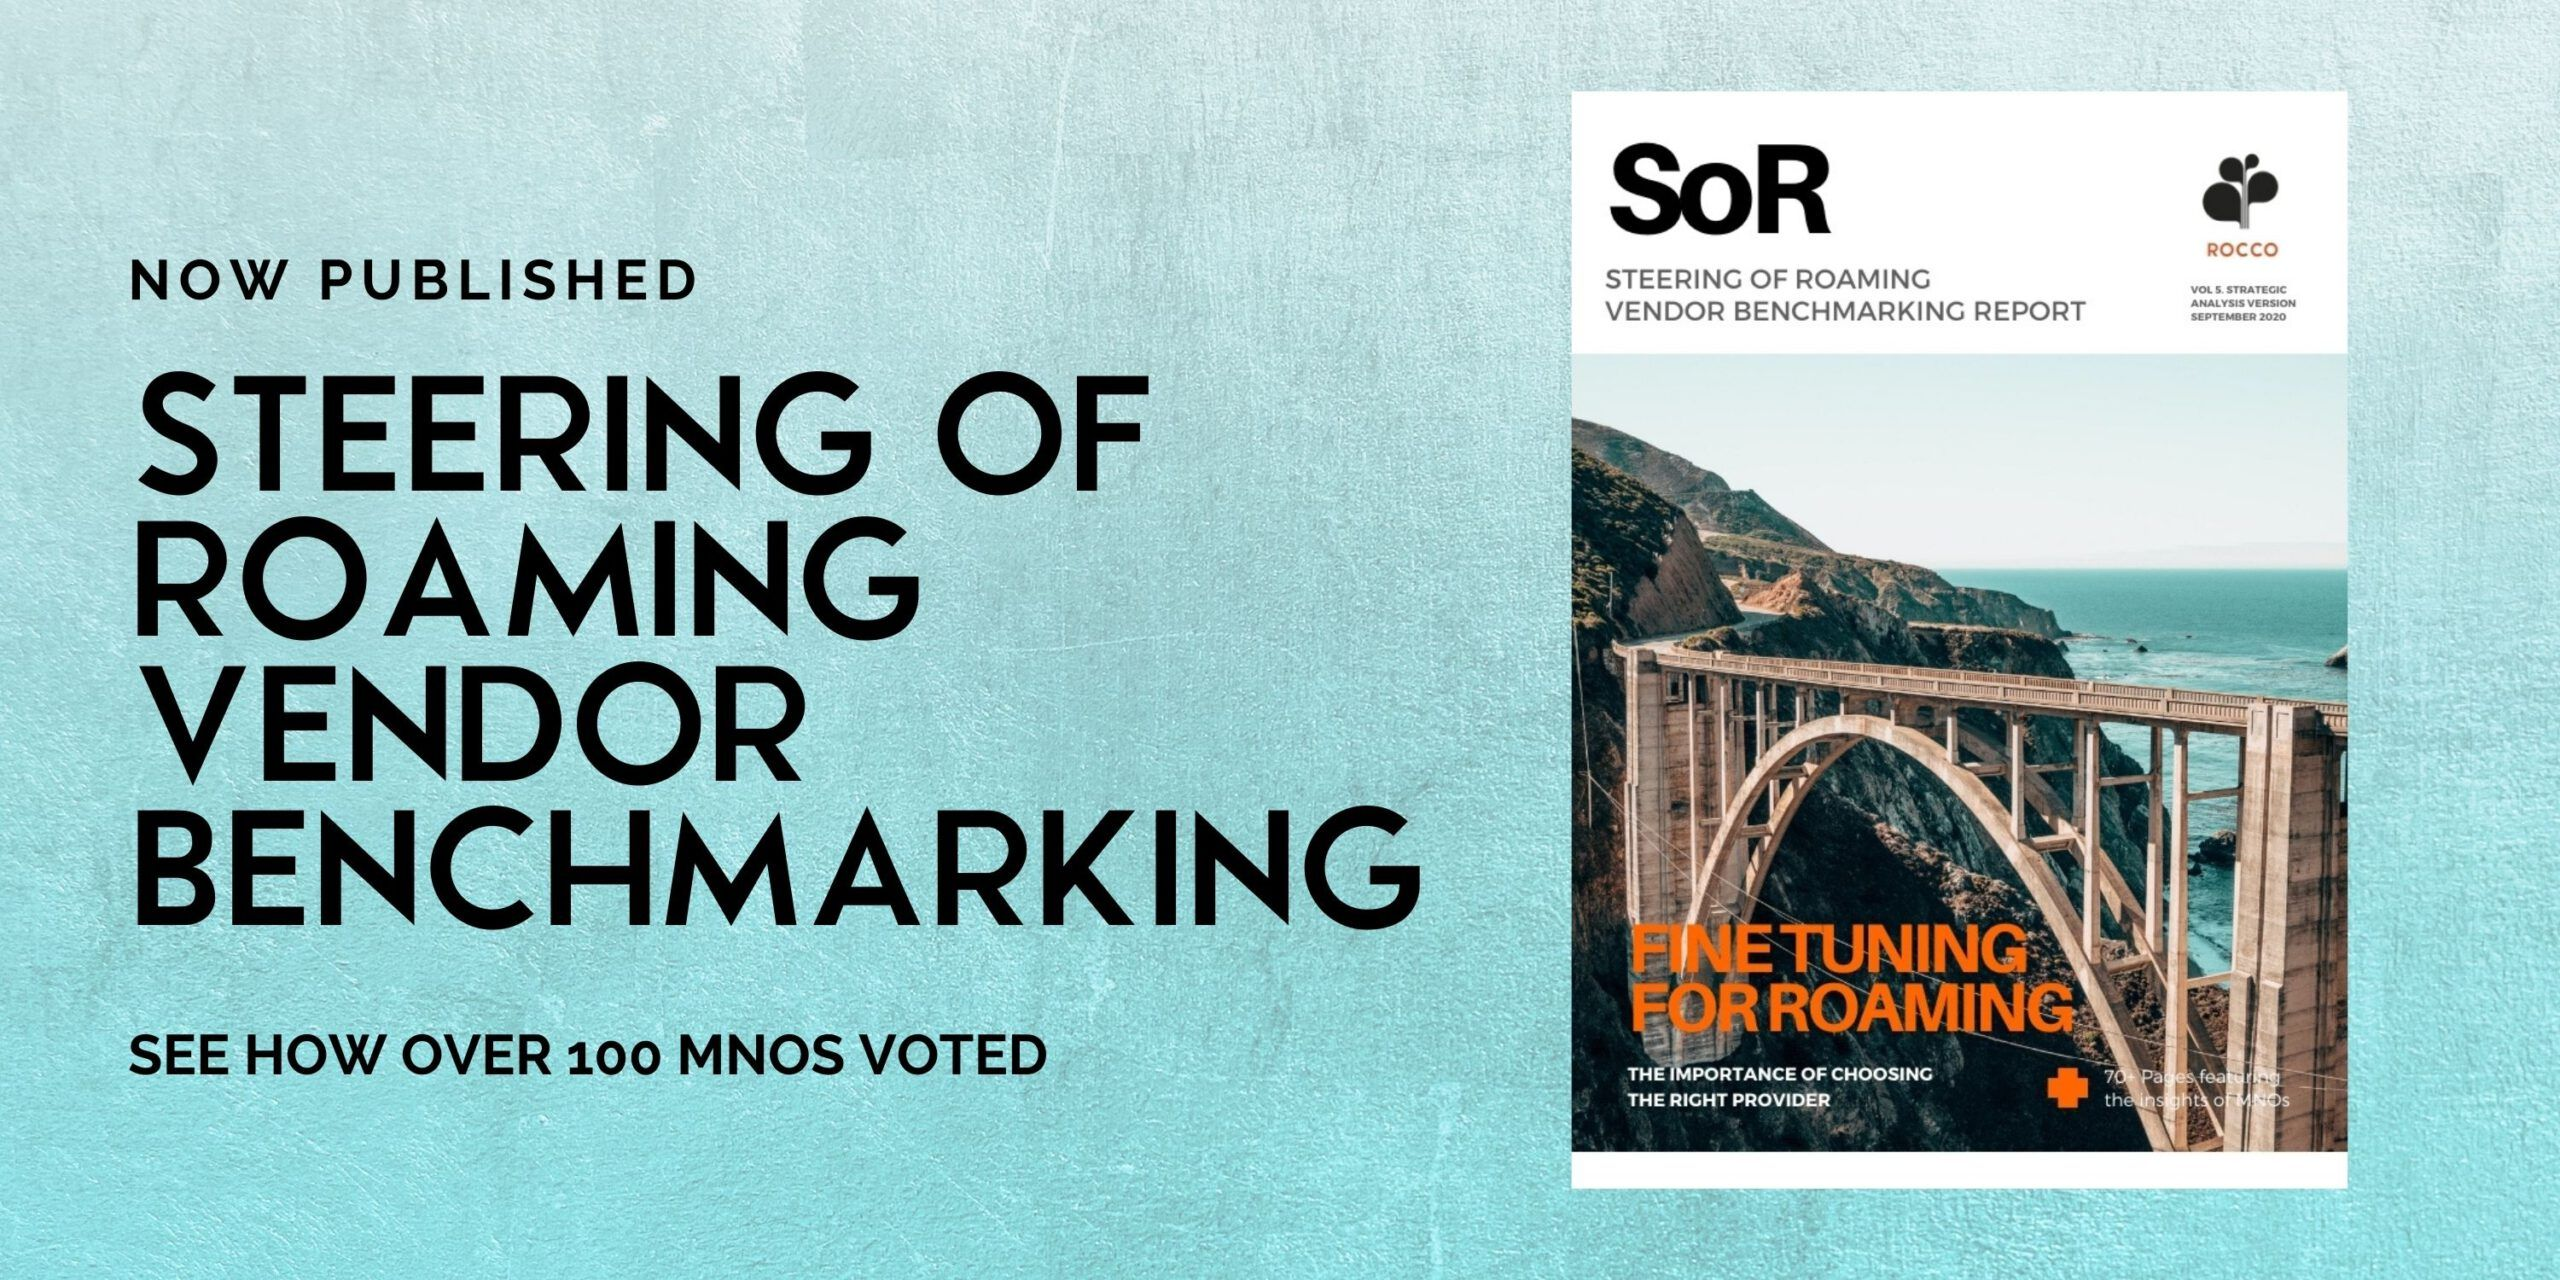 RESULTS: The Leading Vendors of Steering of Roaming 2020